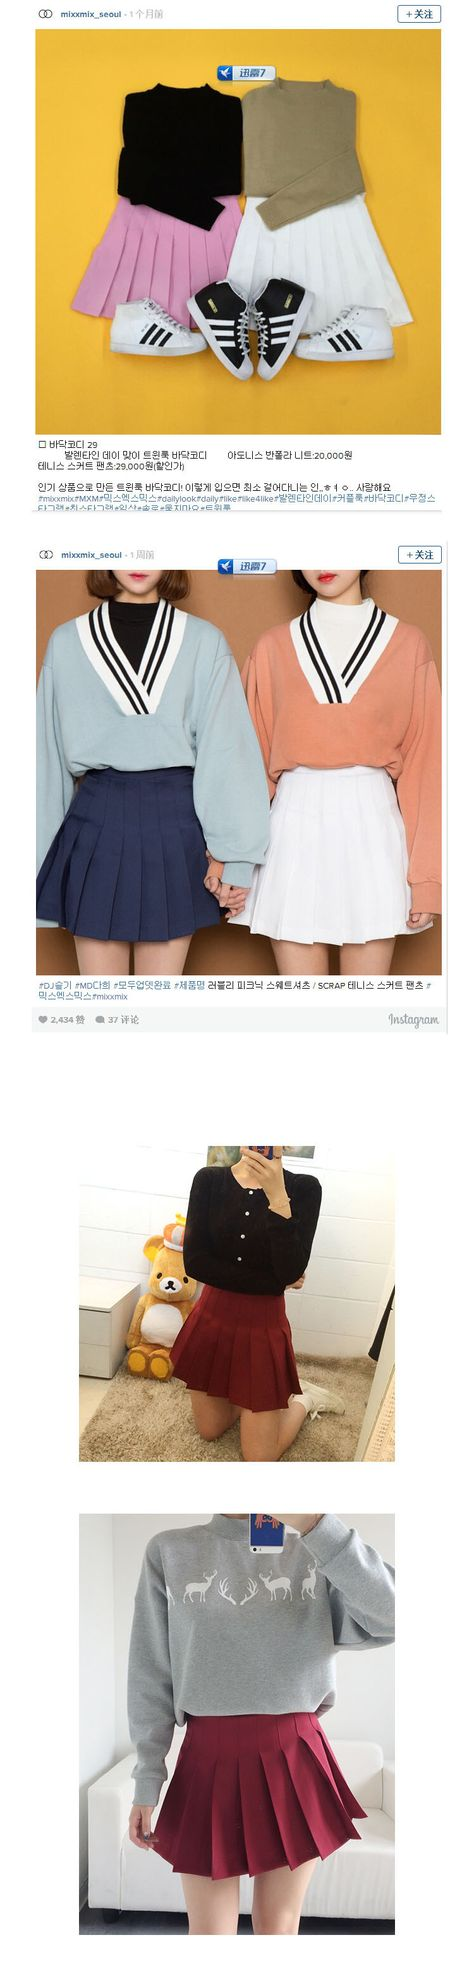 FSJ Stylenanda Macarons Candy Color Pleated Shorts Skirts Women's Year round American Apparel Tennis Ball Sport Casual Falda-inSkirts from Women's Clothing & Accessories on Aliexpress.com | Alibaba Group